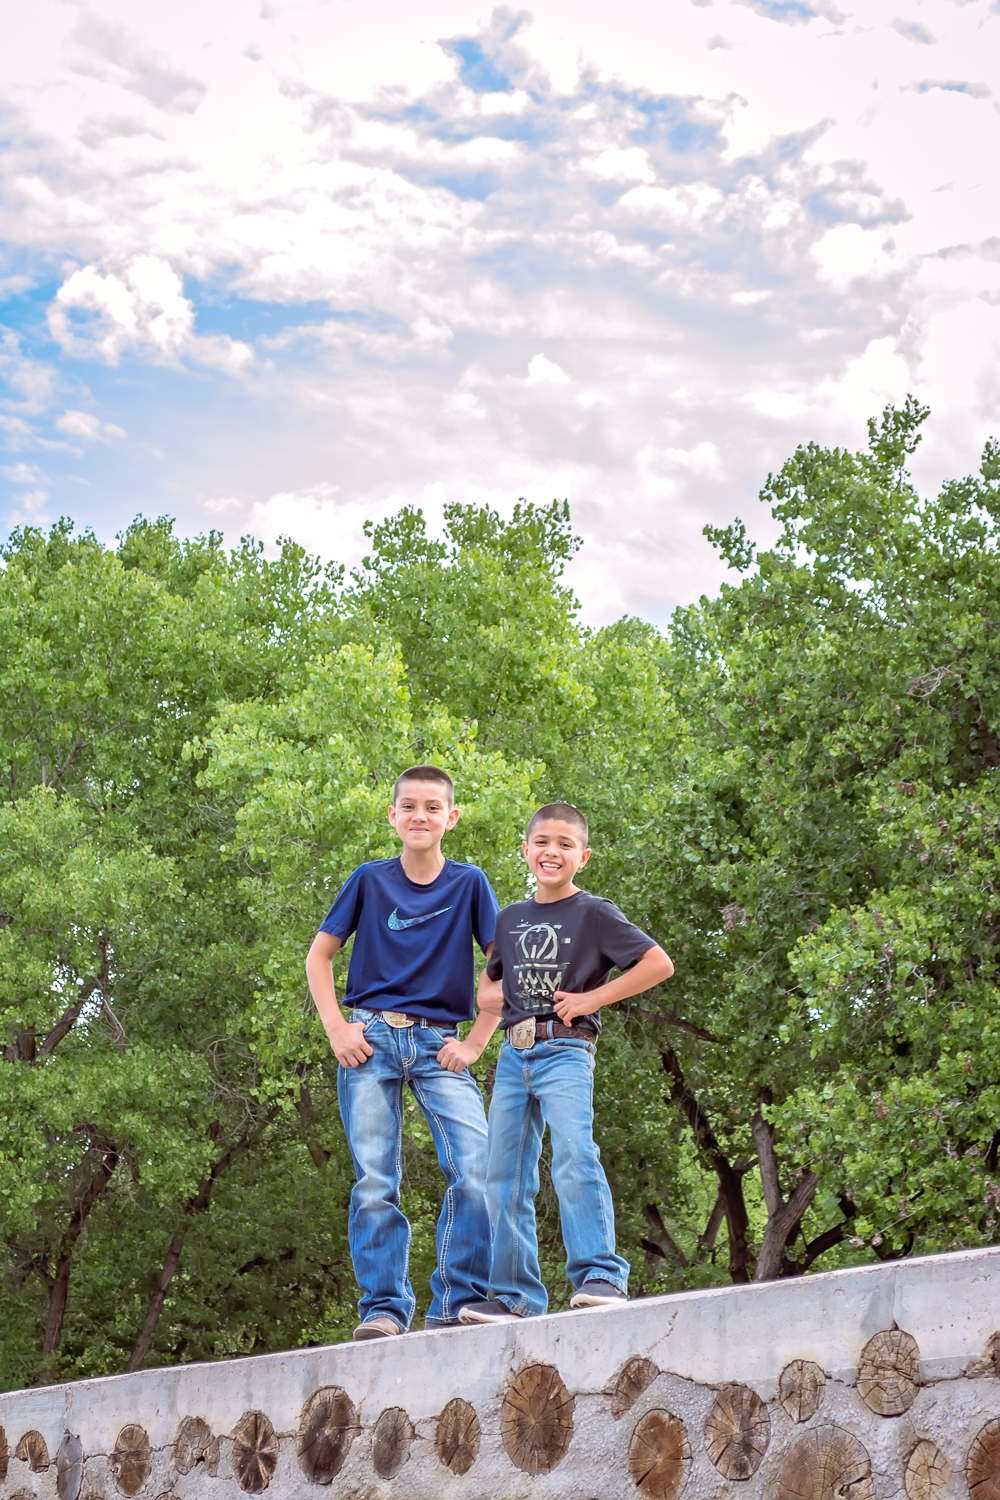 Albuquerque Family Photographer, Albuquerque Photographer, Rio Rancho Photographer, Children's Photographer, Childhood Portraits, Sibling Portraits